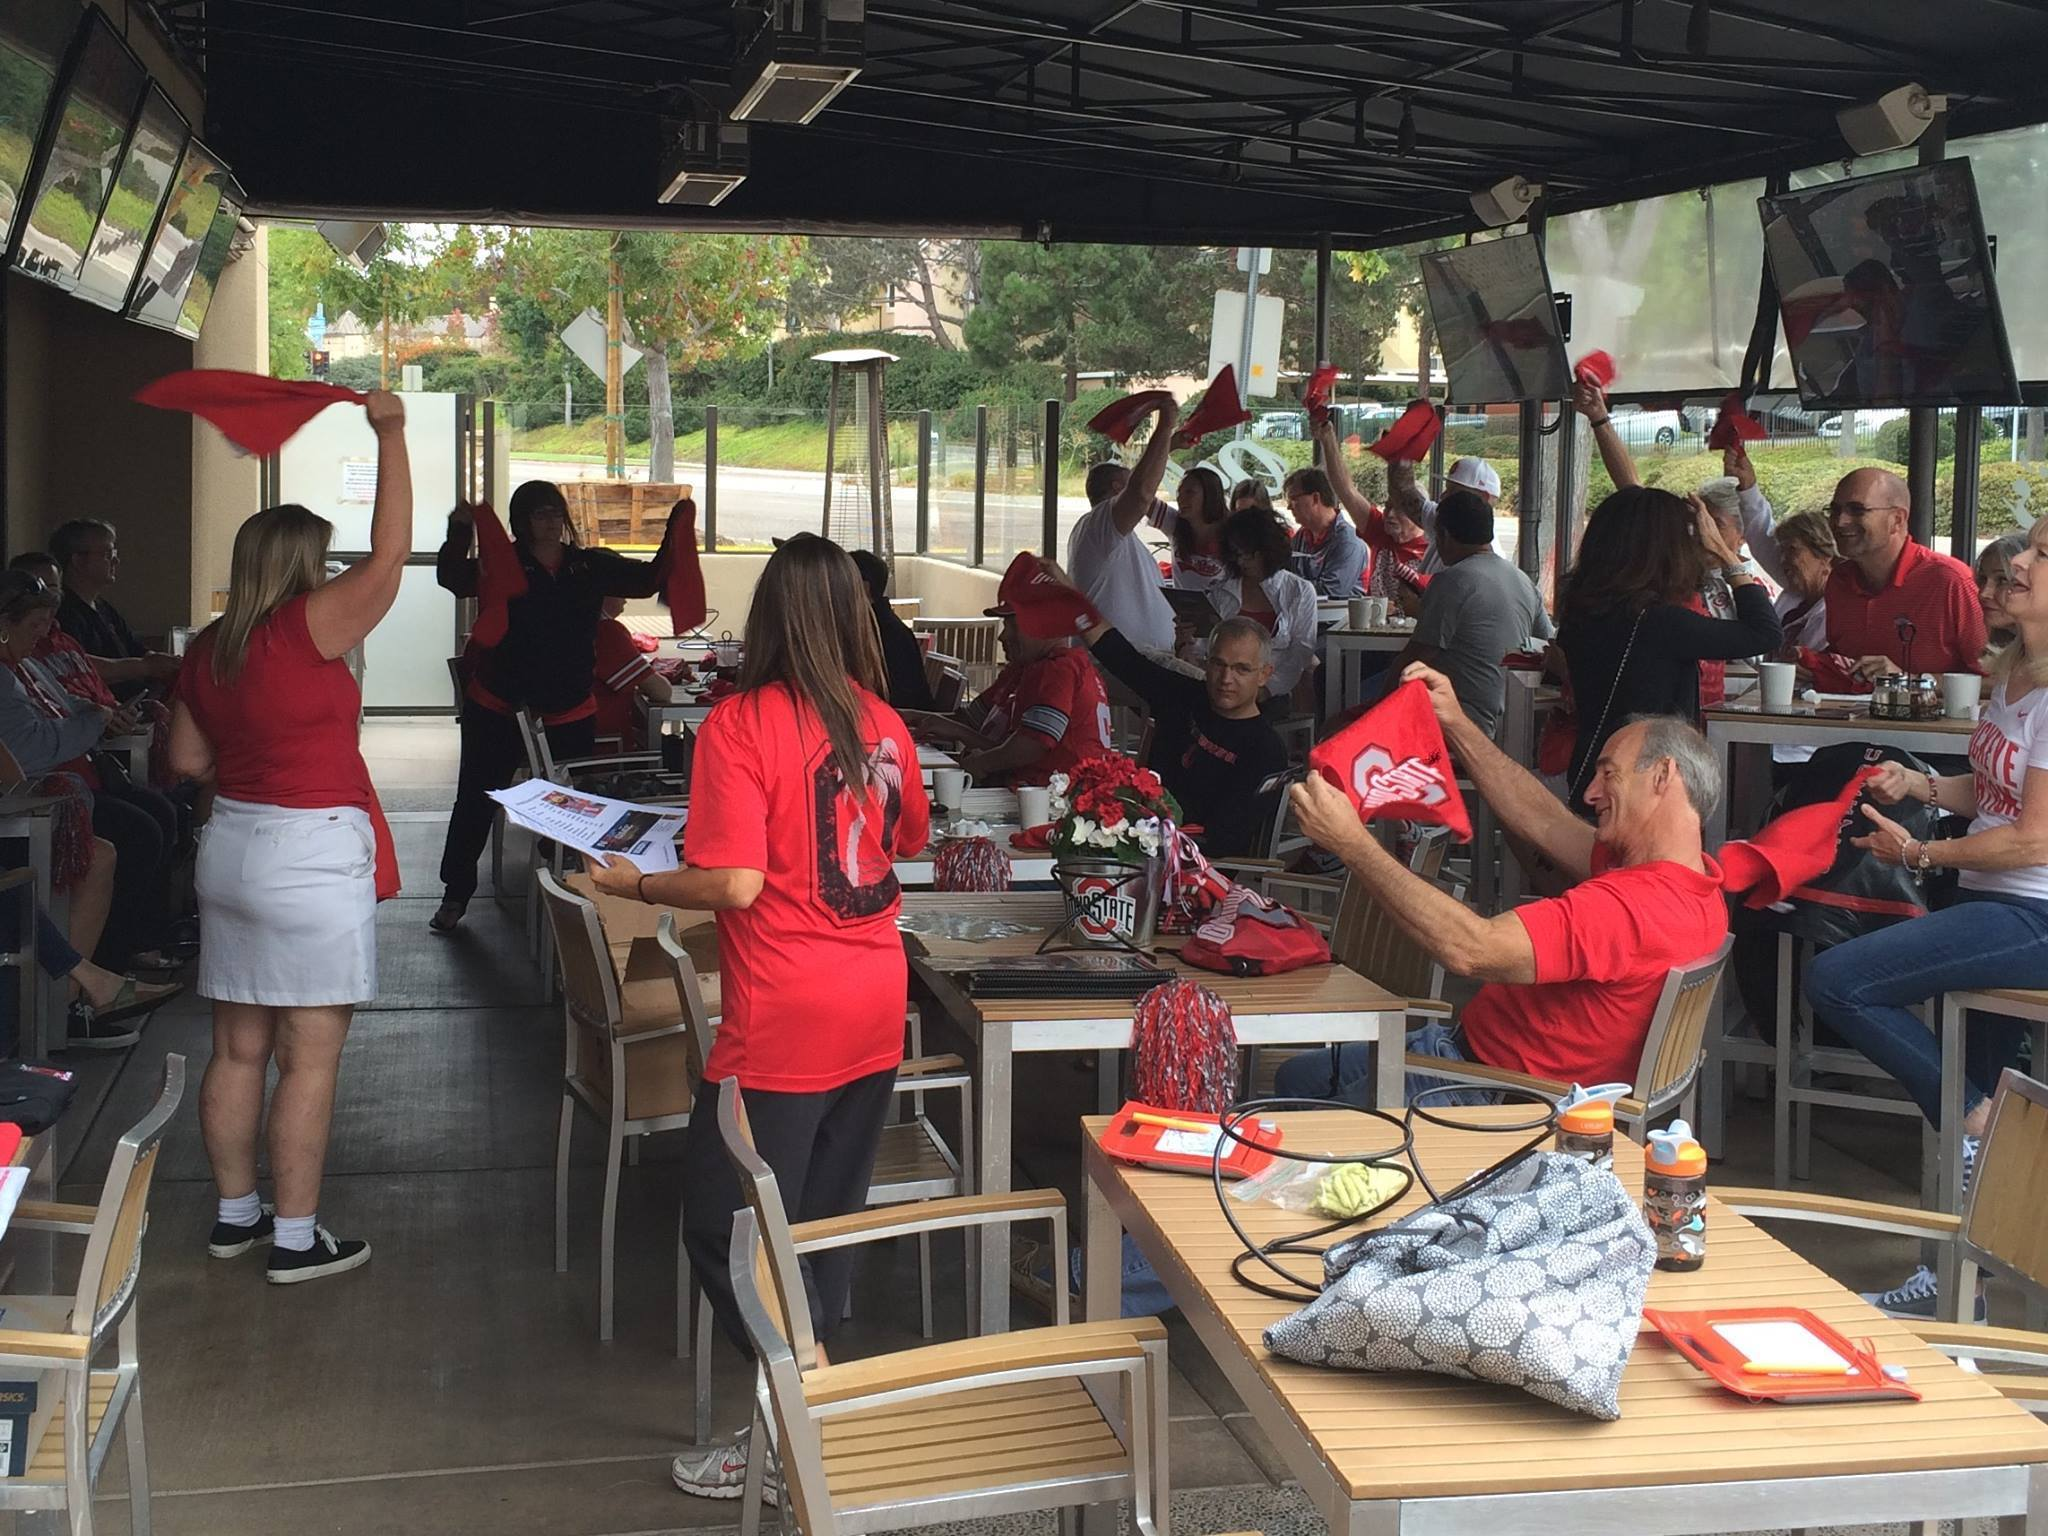 A Ohio State watch party on the Oggi's patio in Carmel Valley.